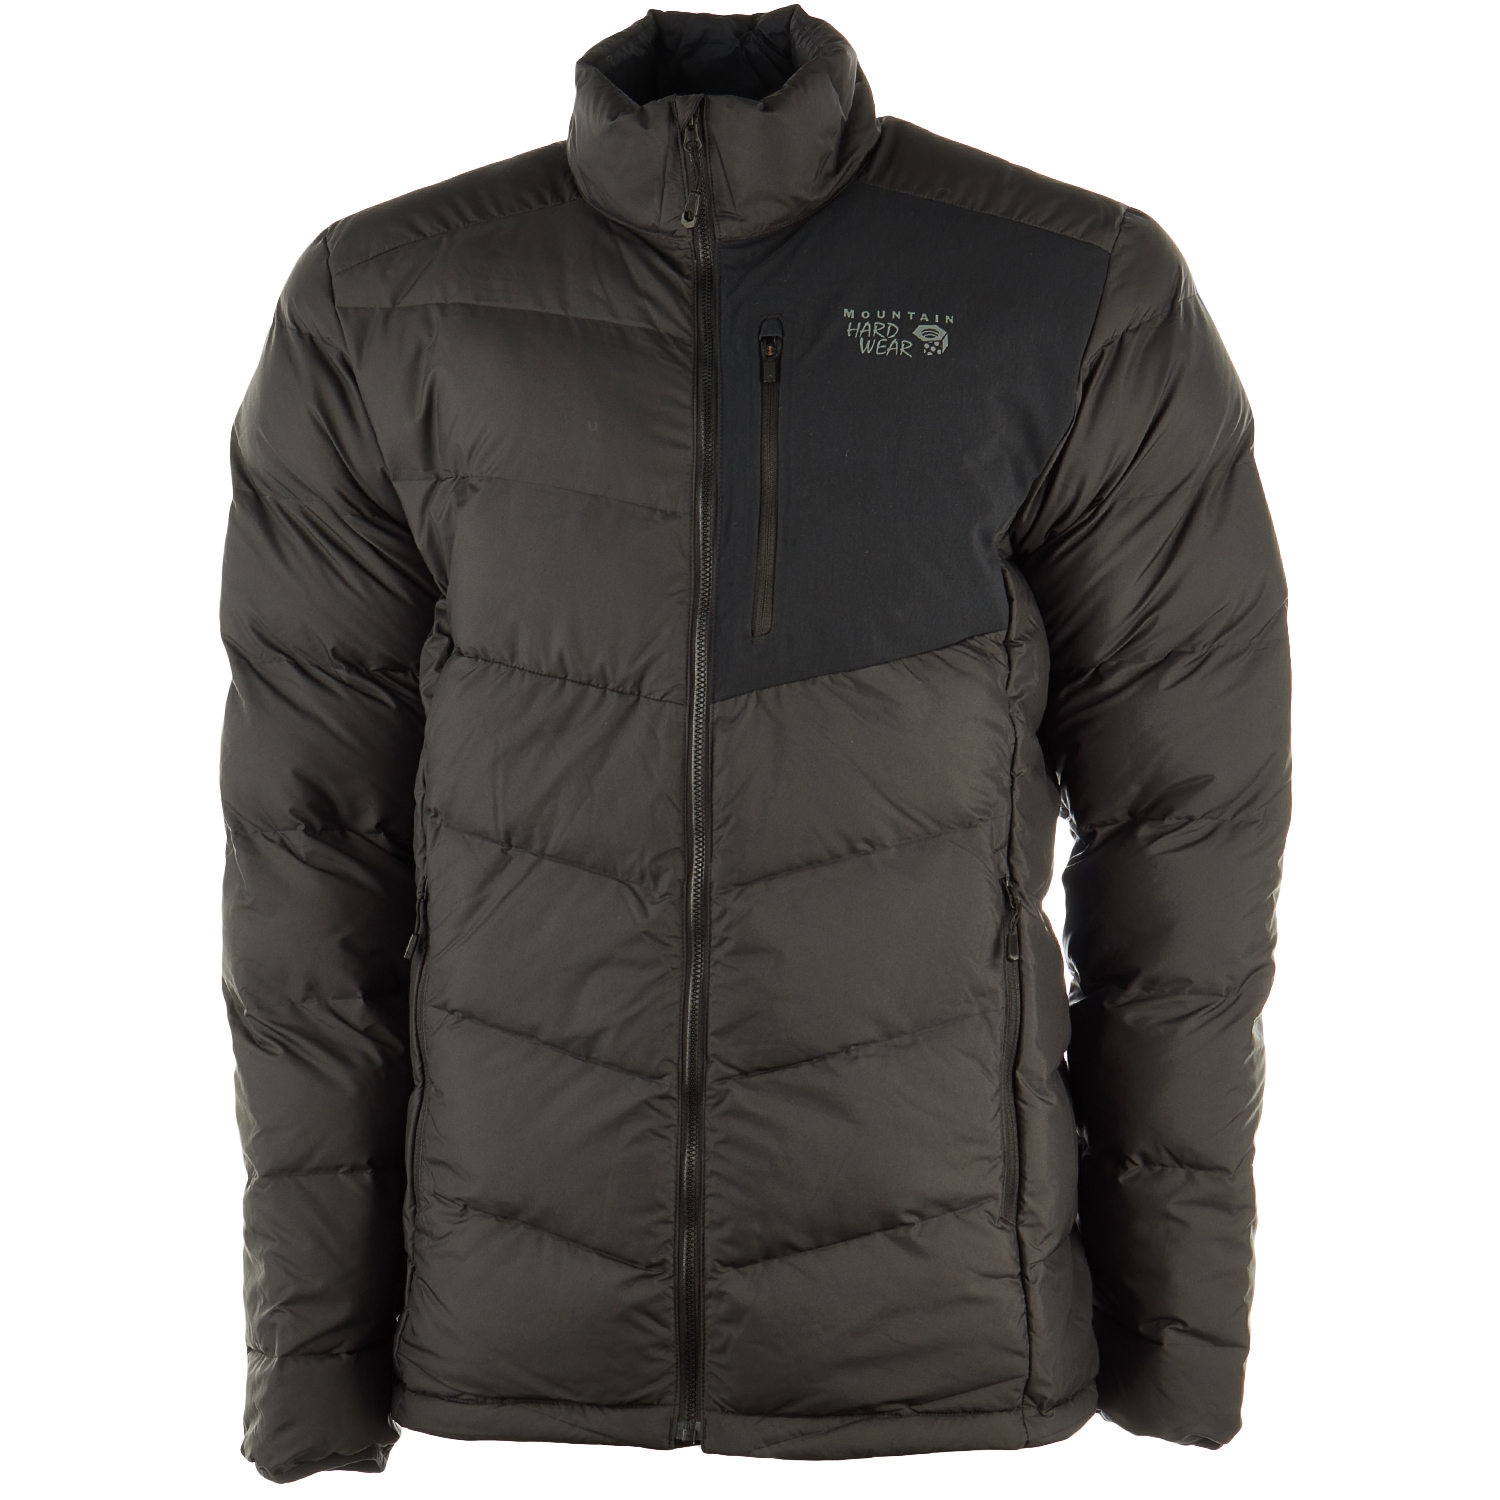 Mountain Hardwear Thermist Jacket Insulated Down Coat - Mens